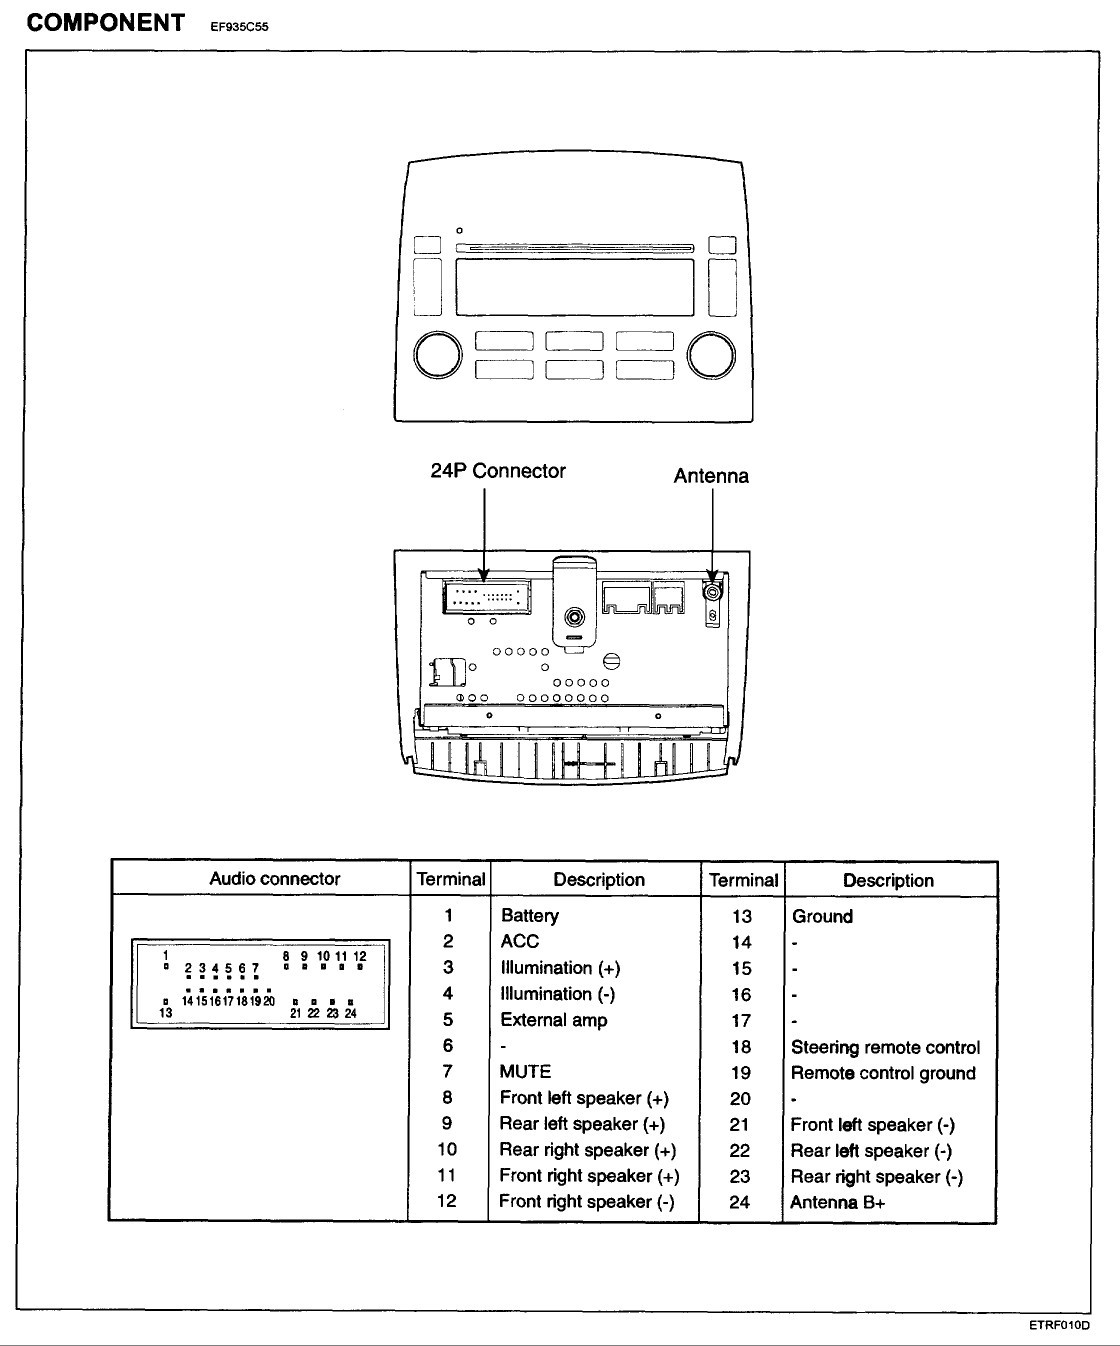 2006 Hyundai Sonata Radio Wiring Diagram Free. 2006 Hyundai Sonata Radio Wiring Diagram 2008 Stereo Wire Center U2022. Hyundai. 2008 Hyundai Sonata Wiring At Scoala.co